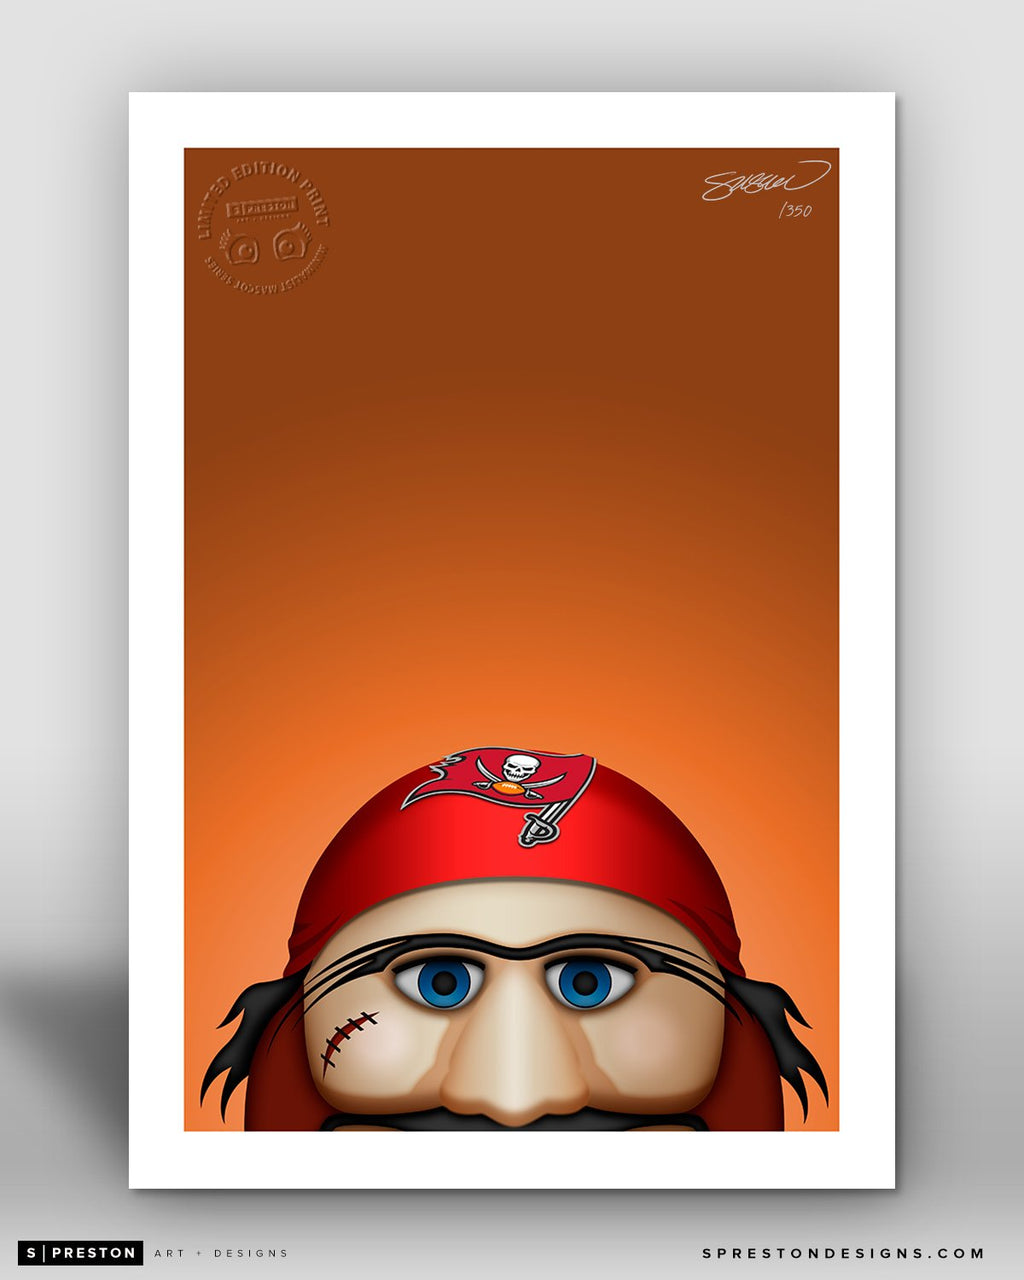 Minimalist Captain Fear Tampa Bay Buccaneers Mascot - S. Preston